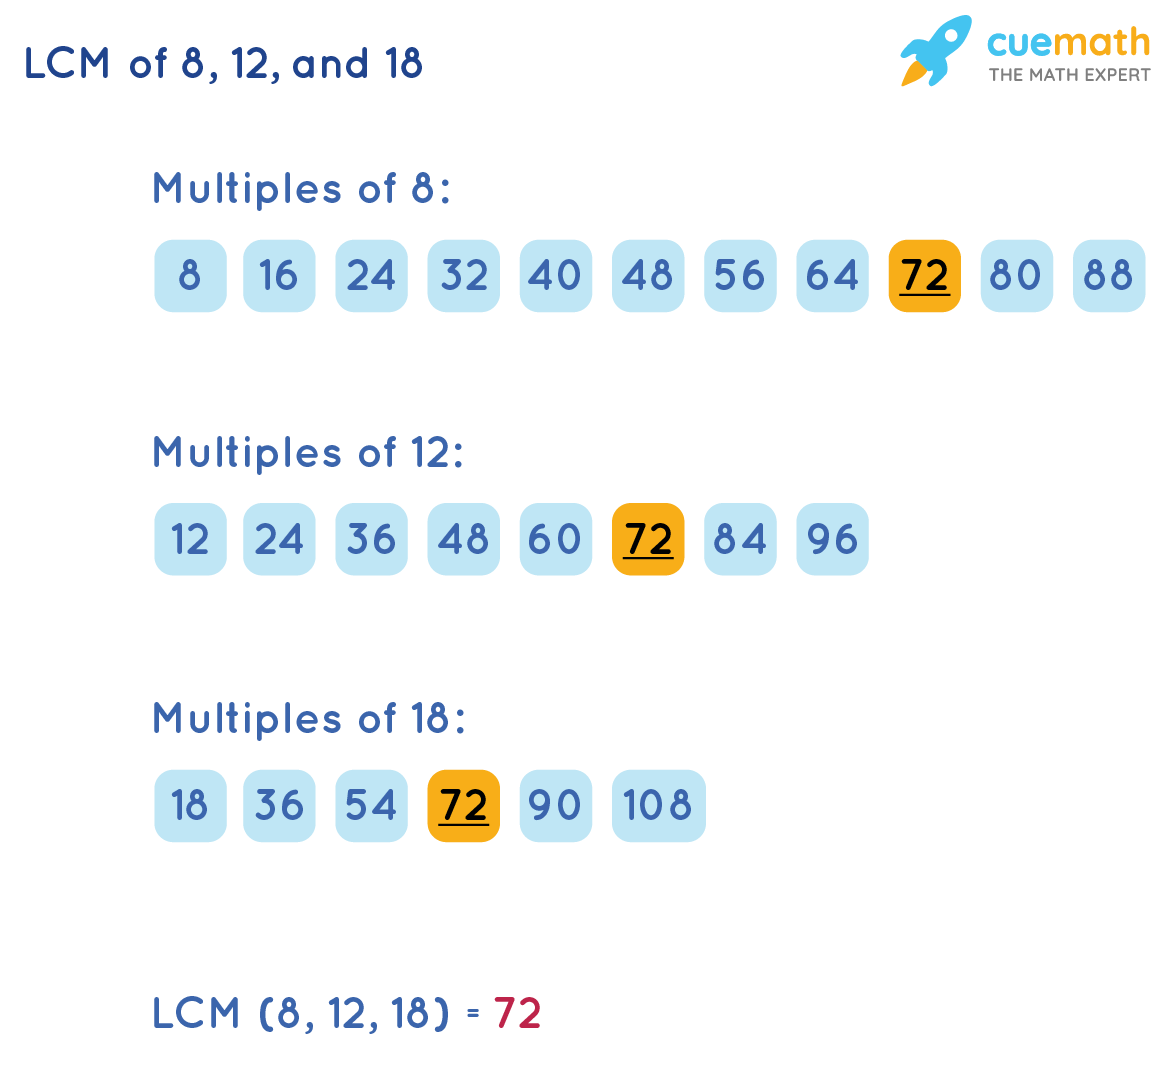 LCM of 8, 12, and 18 by Listing Method